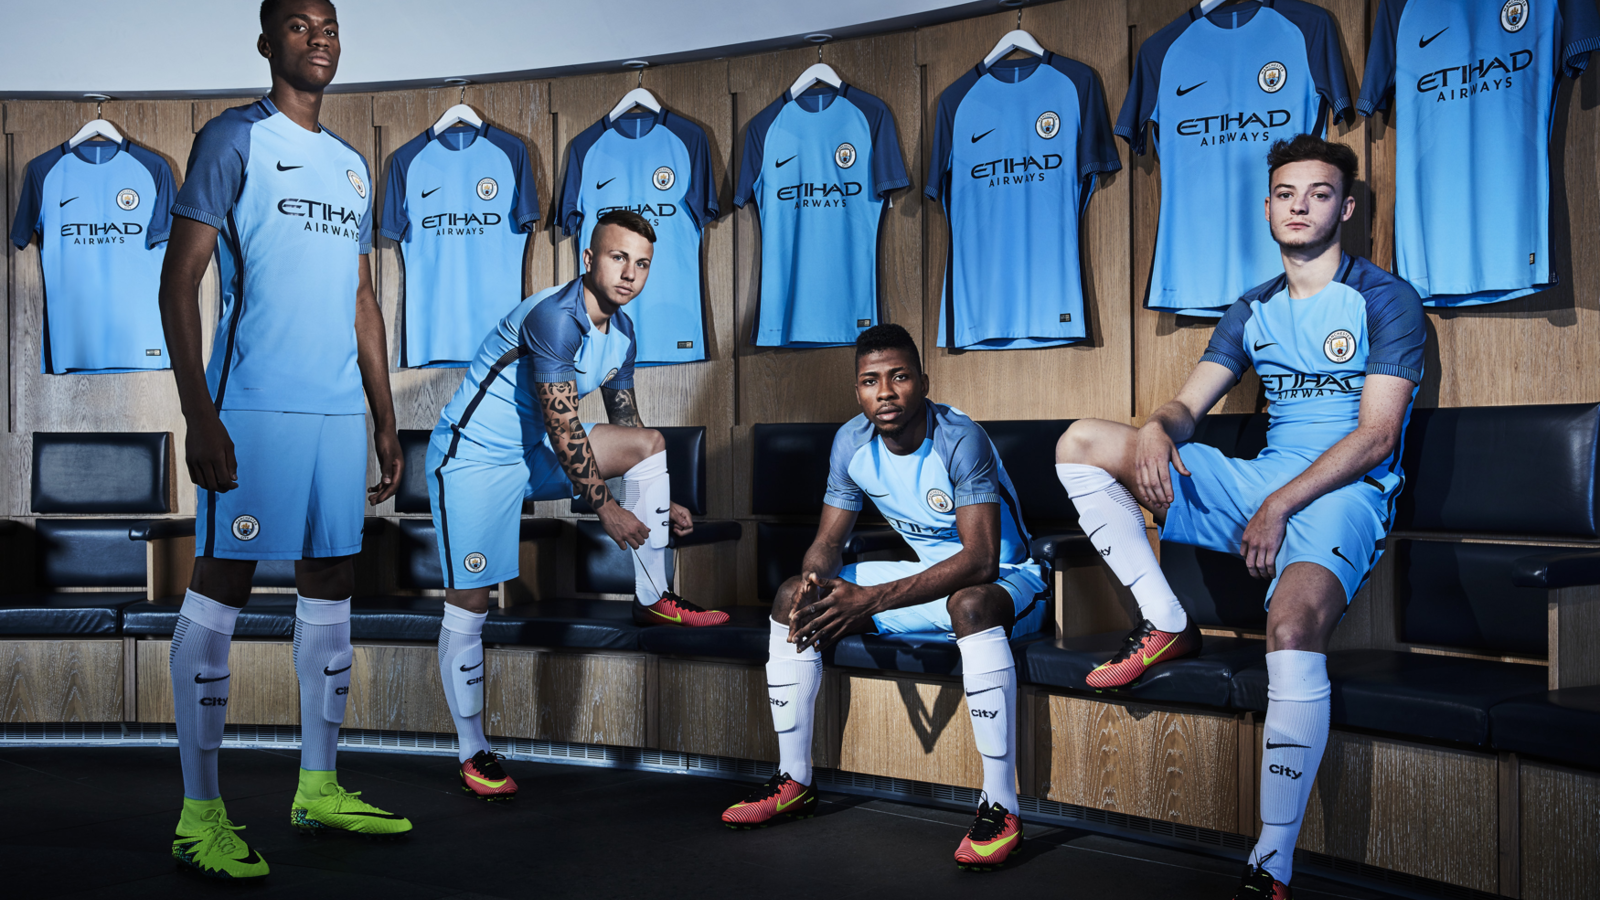 NIKE Manchester_City_Athletes01